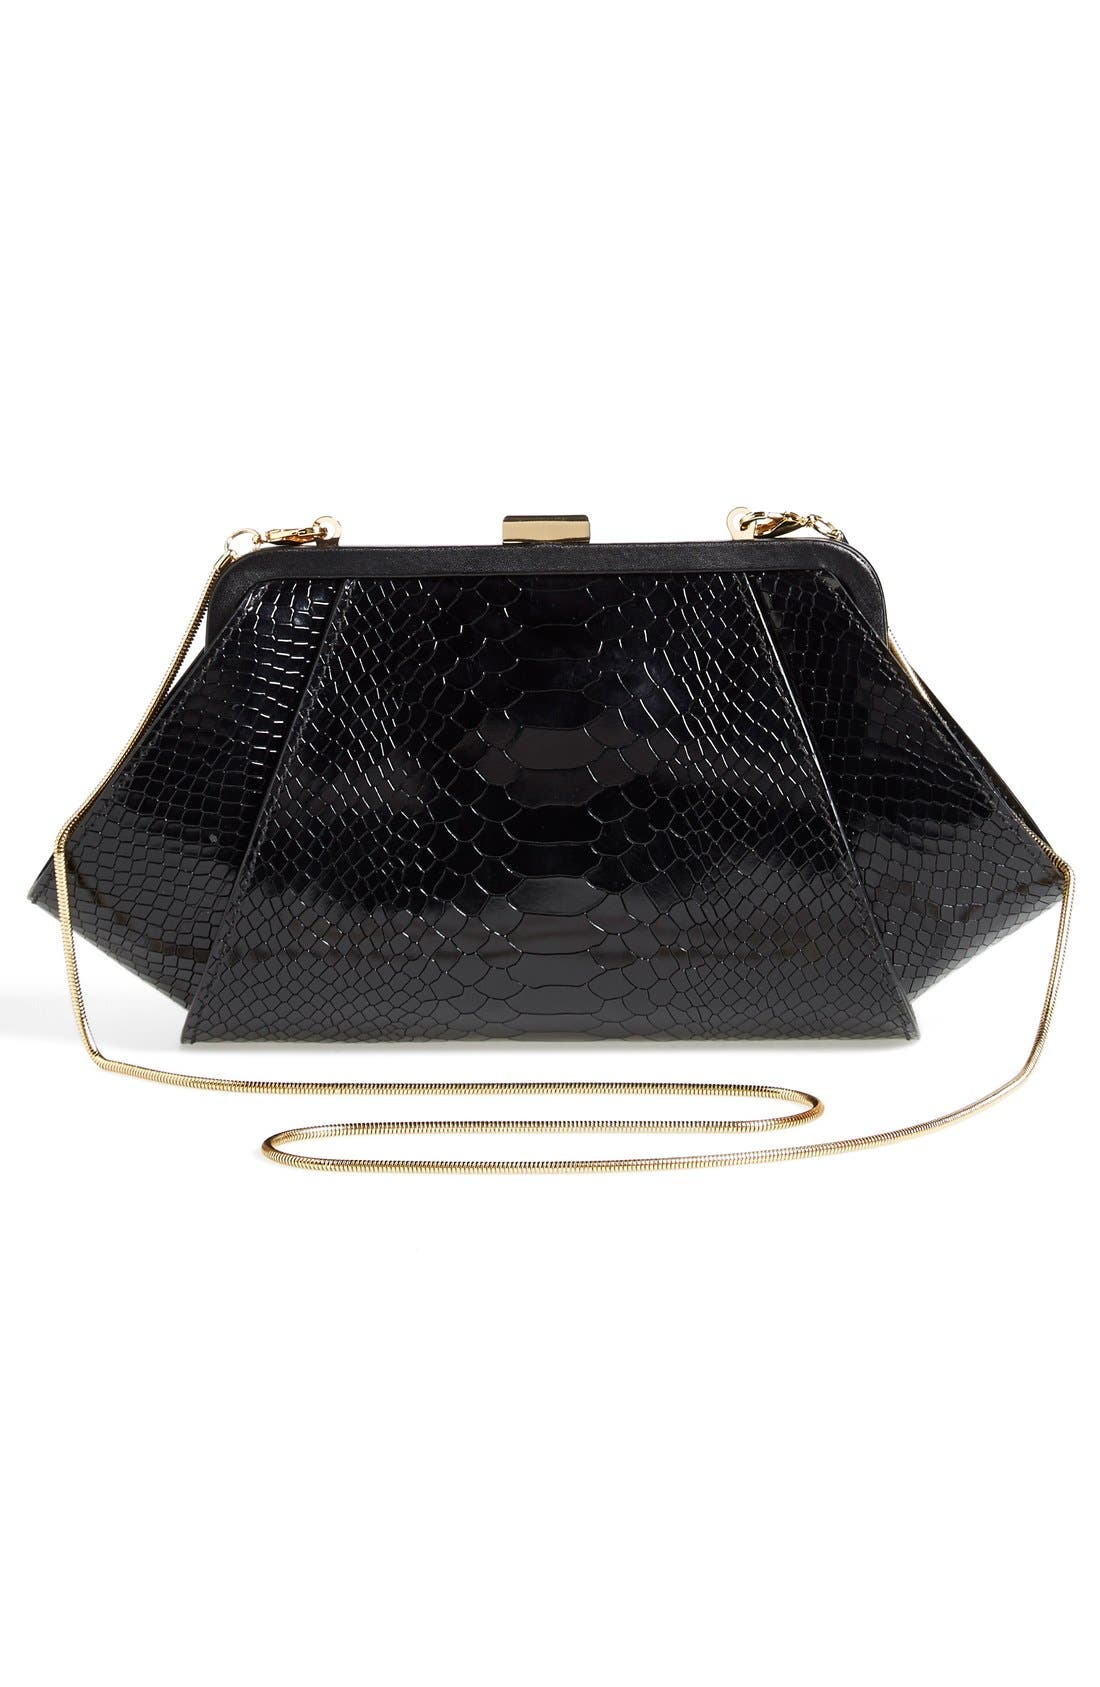 Alternate Image 3  - ZAC Zac Posen 'Posen' Snake Embossed Leather Clutch